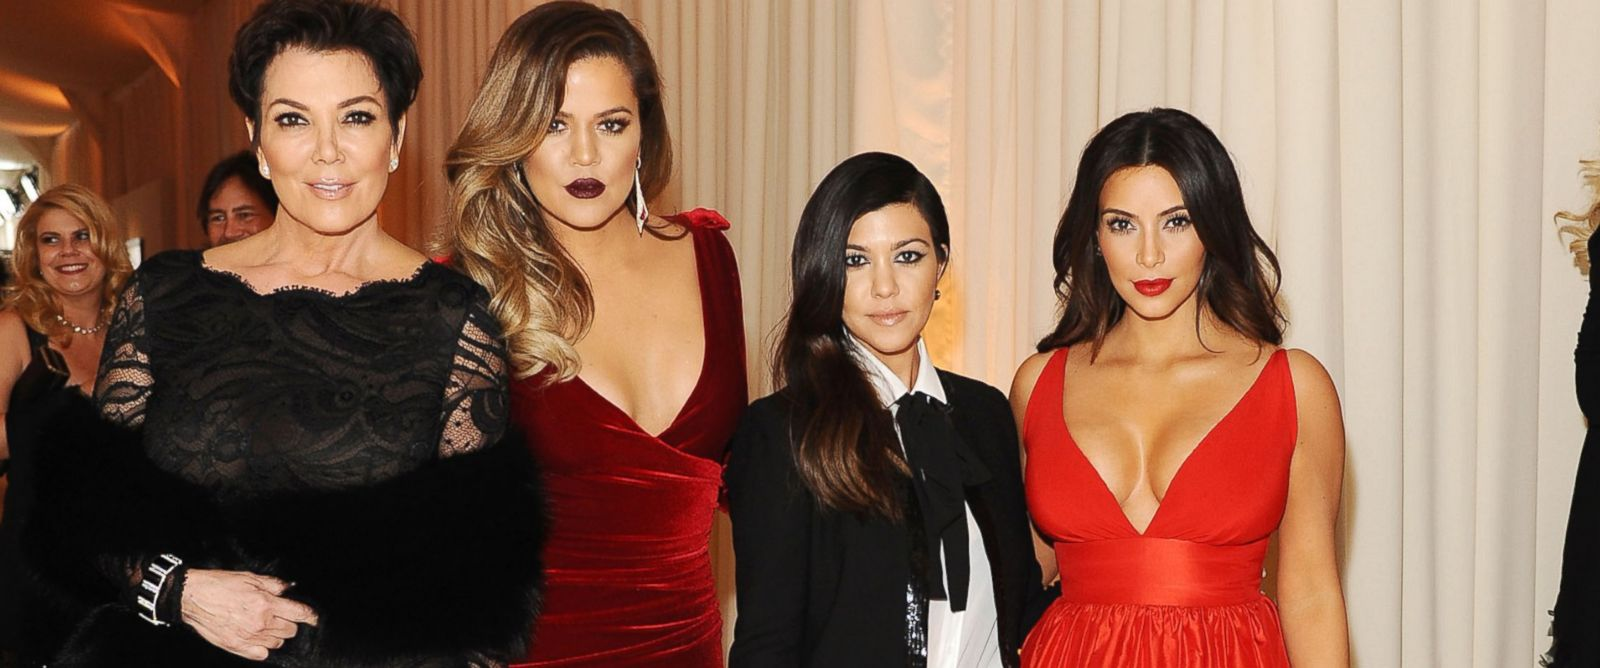 PHOTO: Kris Jenner, Khloe Kardashian, Kourtney Kardashian and Kim Kardashian